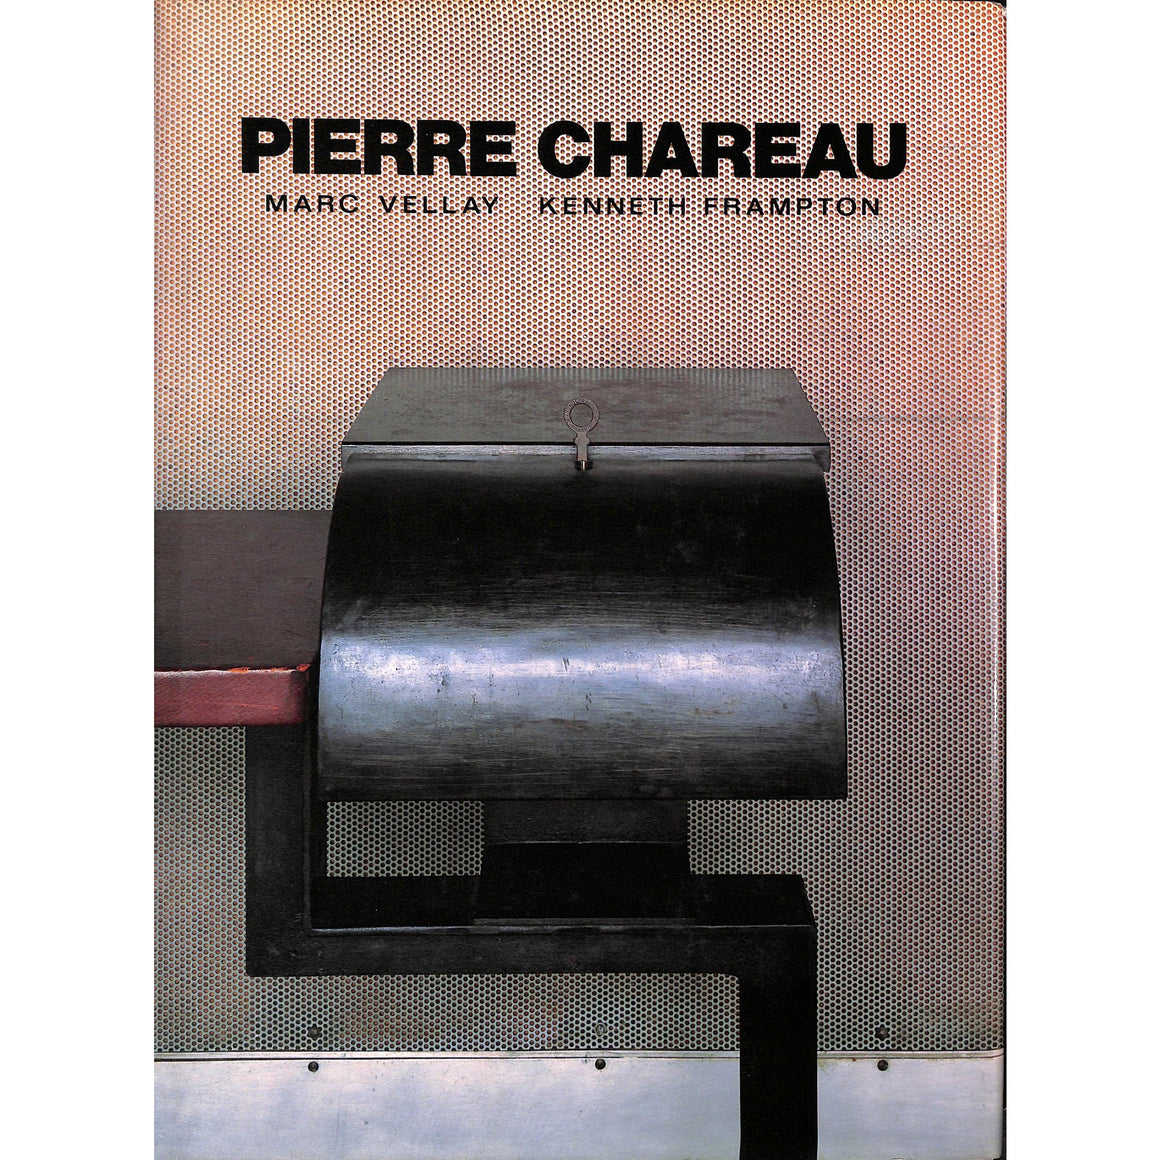 Pierre Chareau: Architect and Craftsman 1883-1950